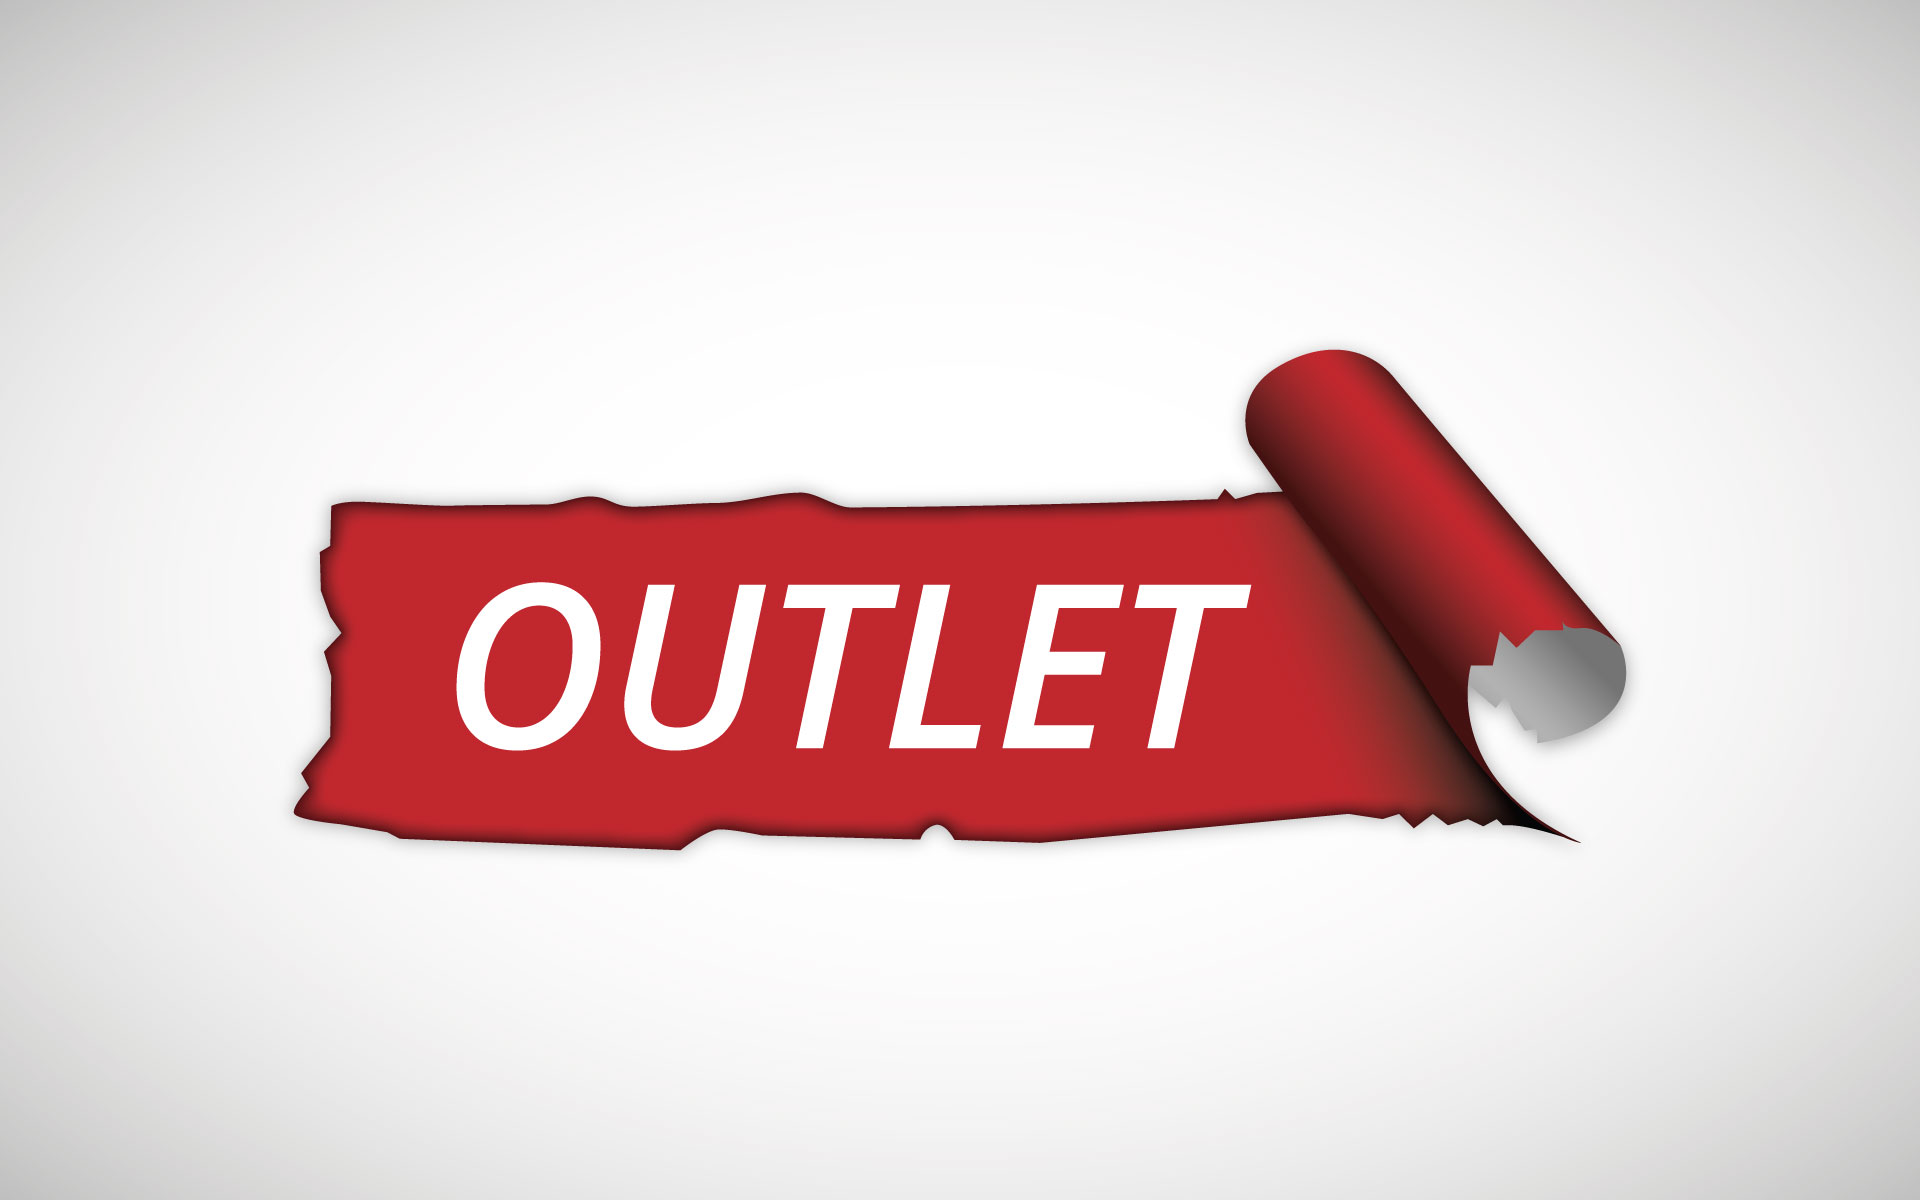 Check out our OUTLET!